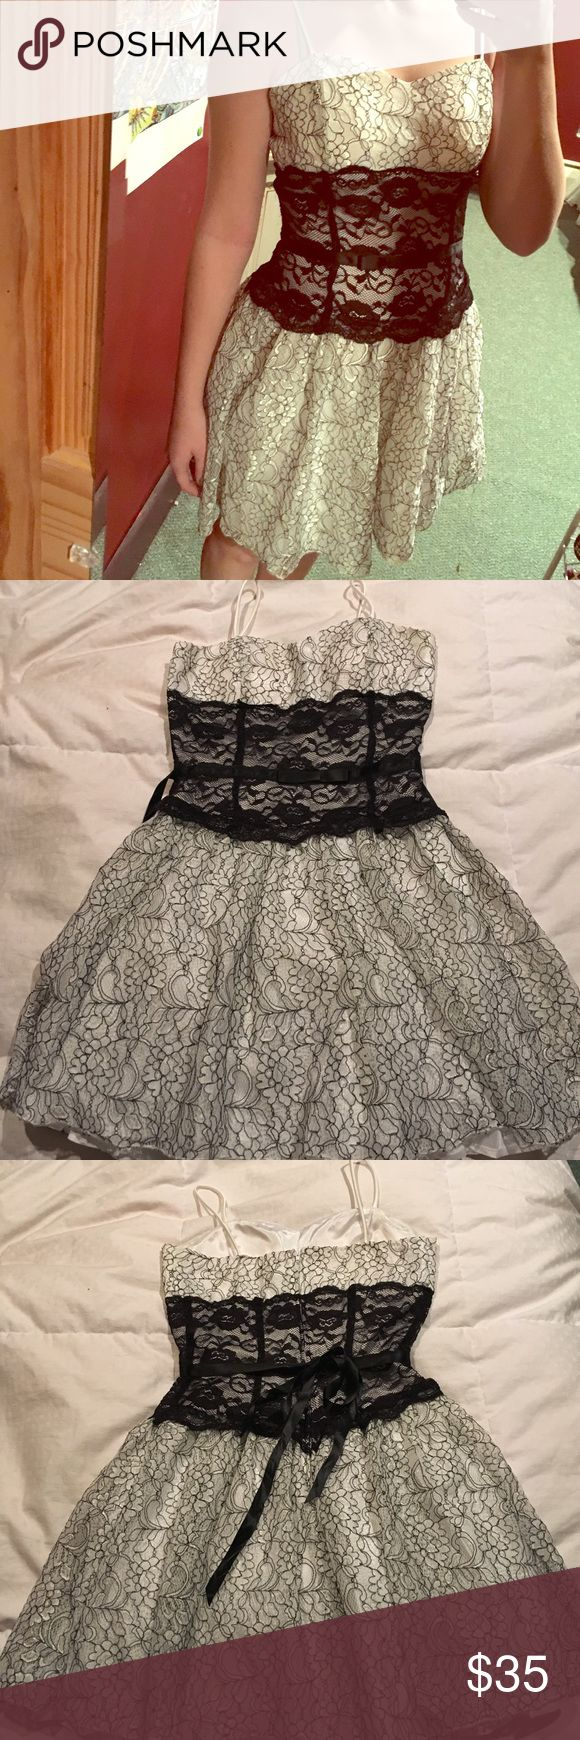 Black and White Lace Party Dress Black and white lace dress. Has padding in the bust, very structured, has netting to make the skirt have volume. Only been worn once! In perfect condition. Taboo Dresses Prom